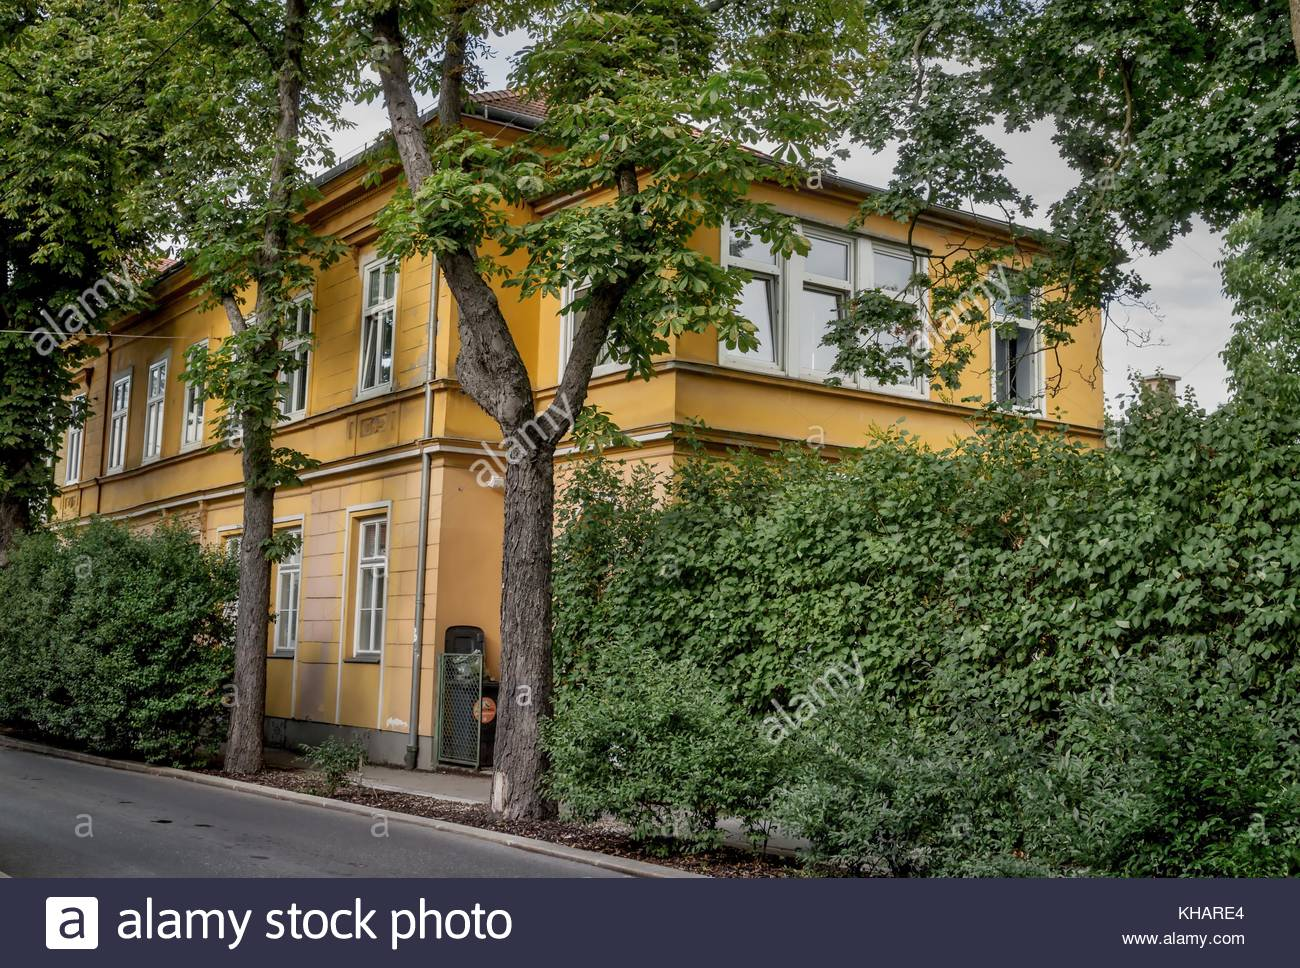 Old Mansion in the 13th district in Vienna Austria 8.July.2017 - Stock Image